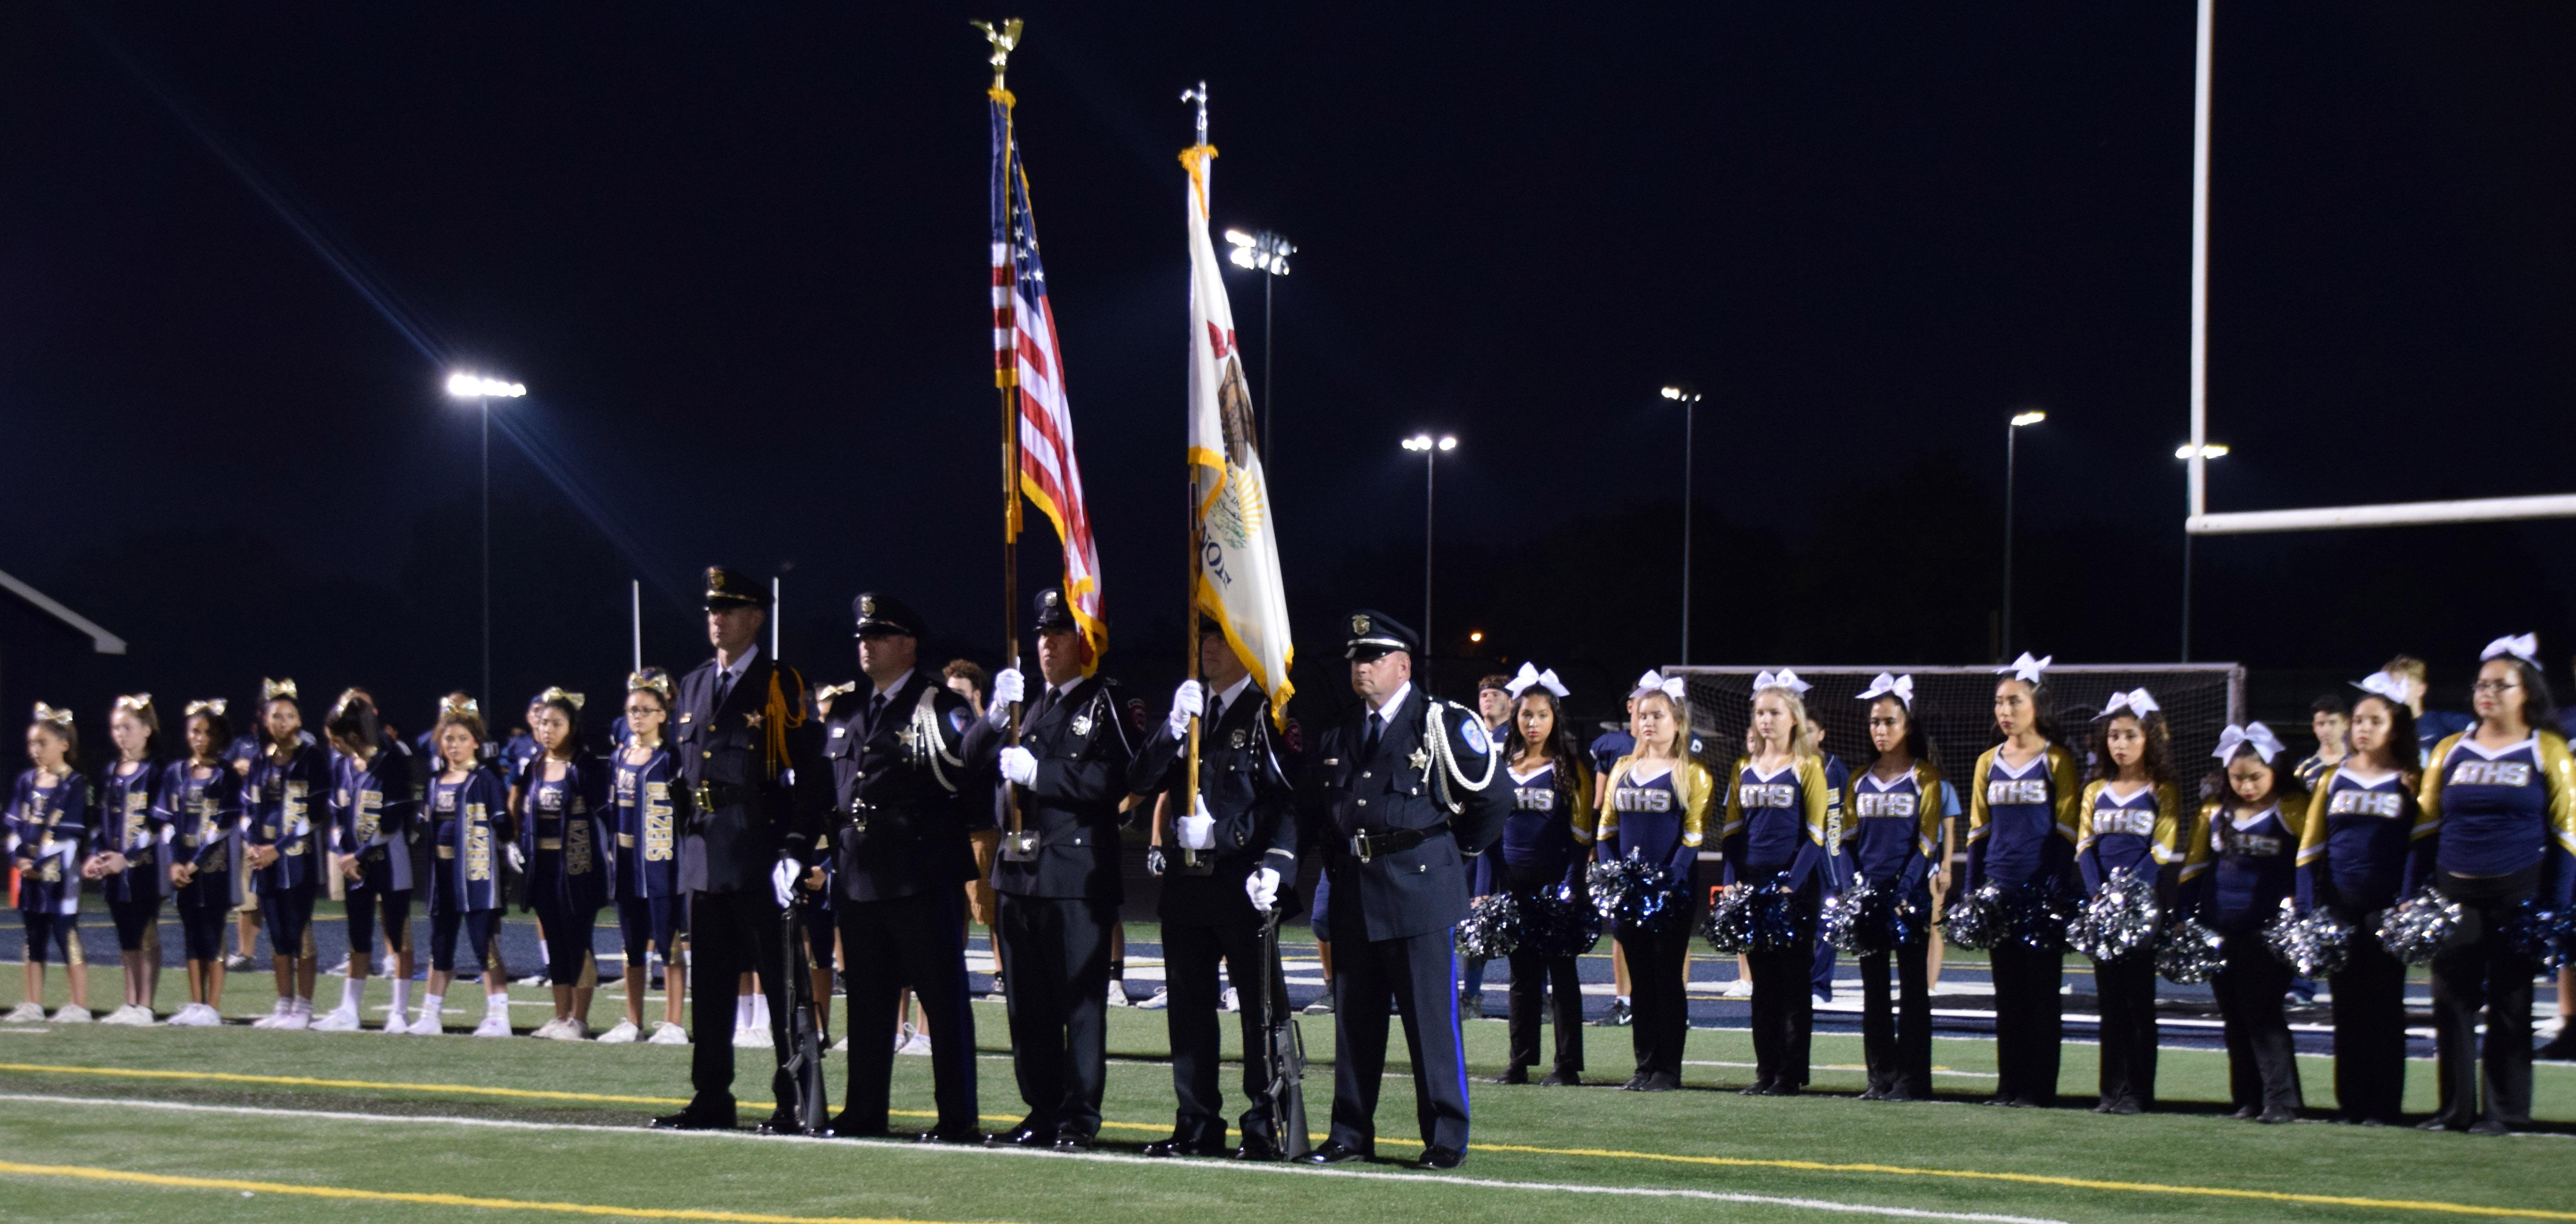 District 88 recognizes community leaders, first responders and veterans during crosstown football game